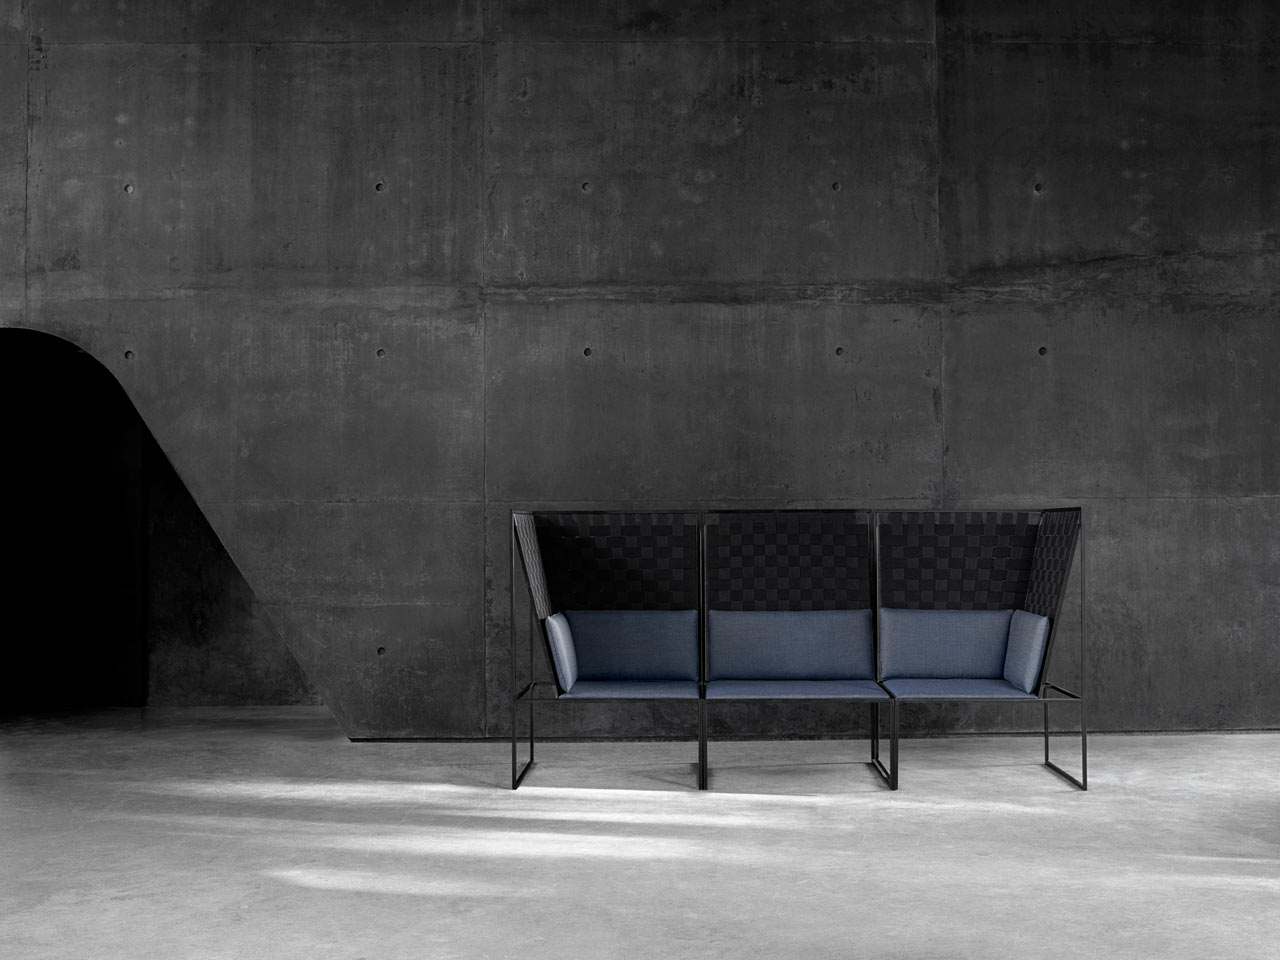 #80 by Aggestrup Is Seating That Interacts with You in a New Way